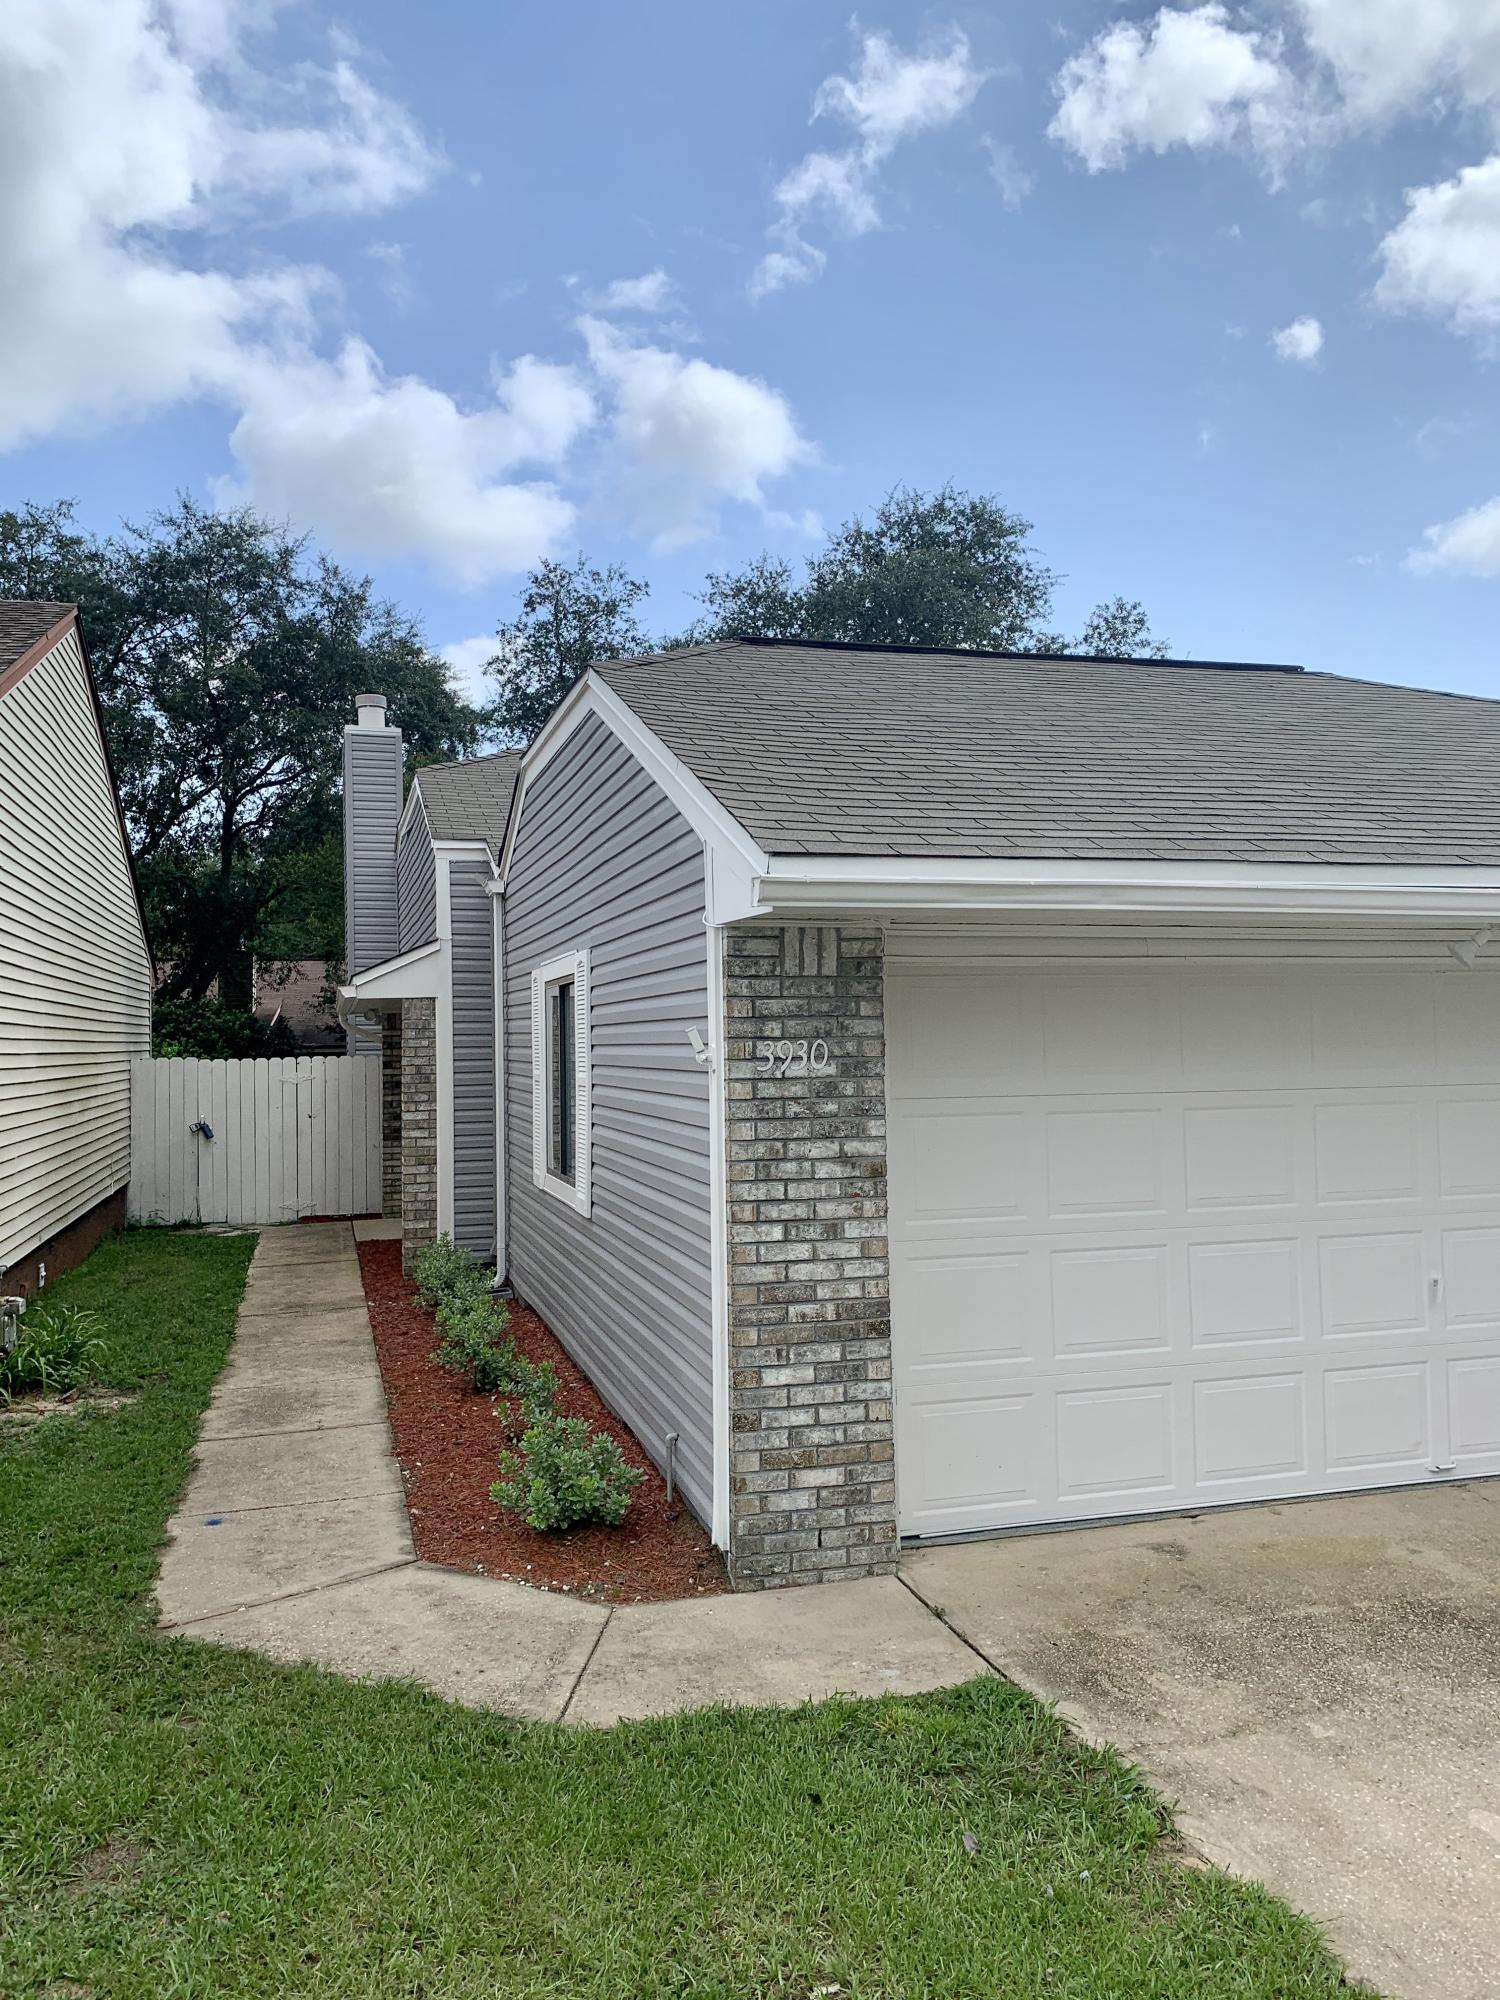 Photo of home for sale at 3930 Balsam, Niceville FL